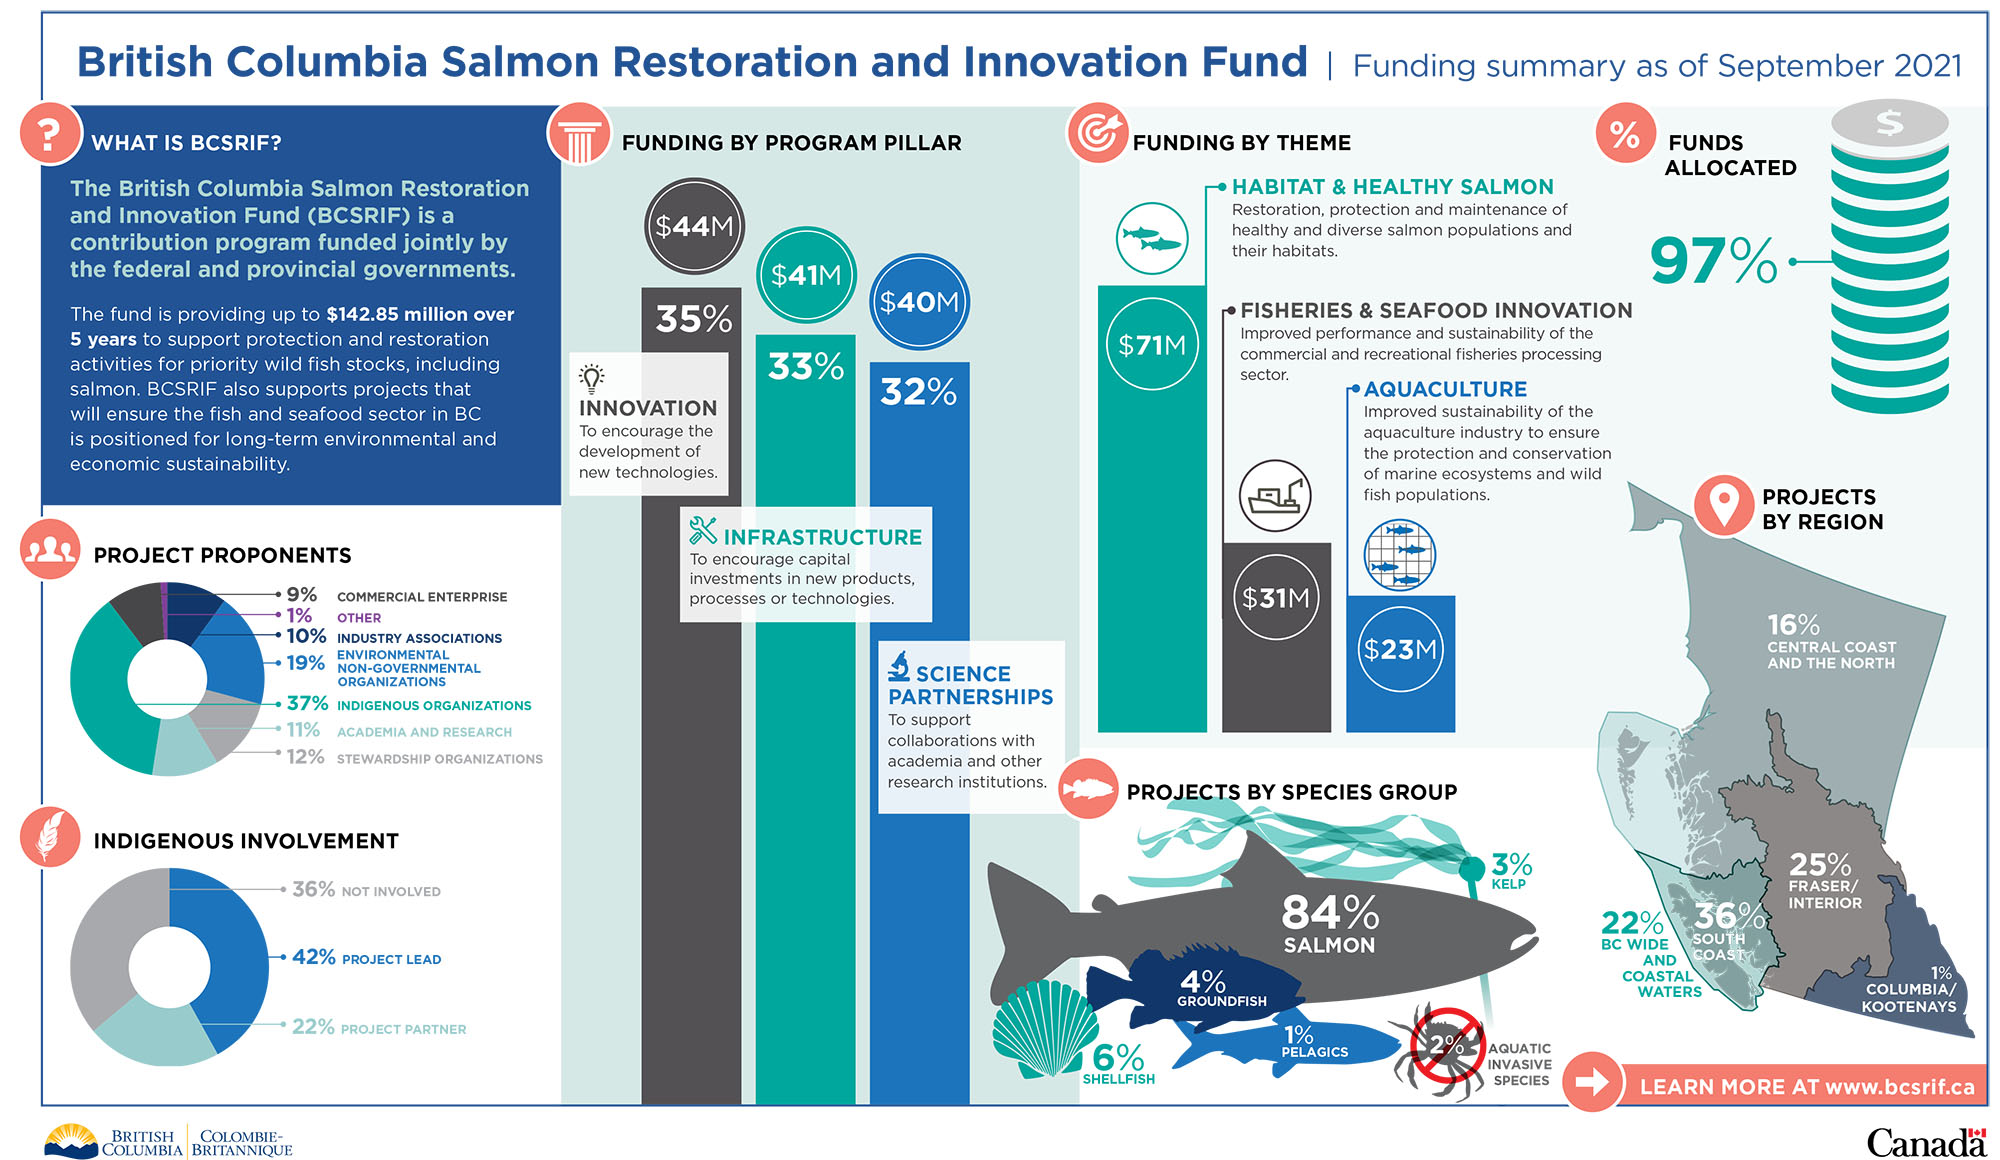 Infographic: Summary of British Columbia Salmon Restoration and Innovation Fund funding as of July 2020